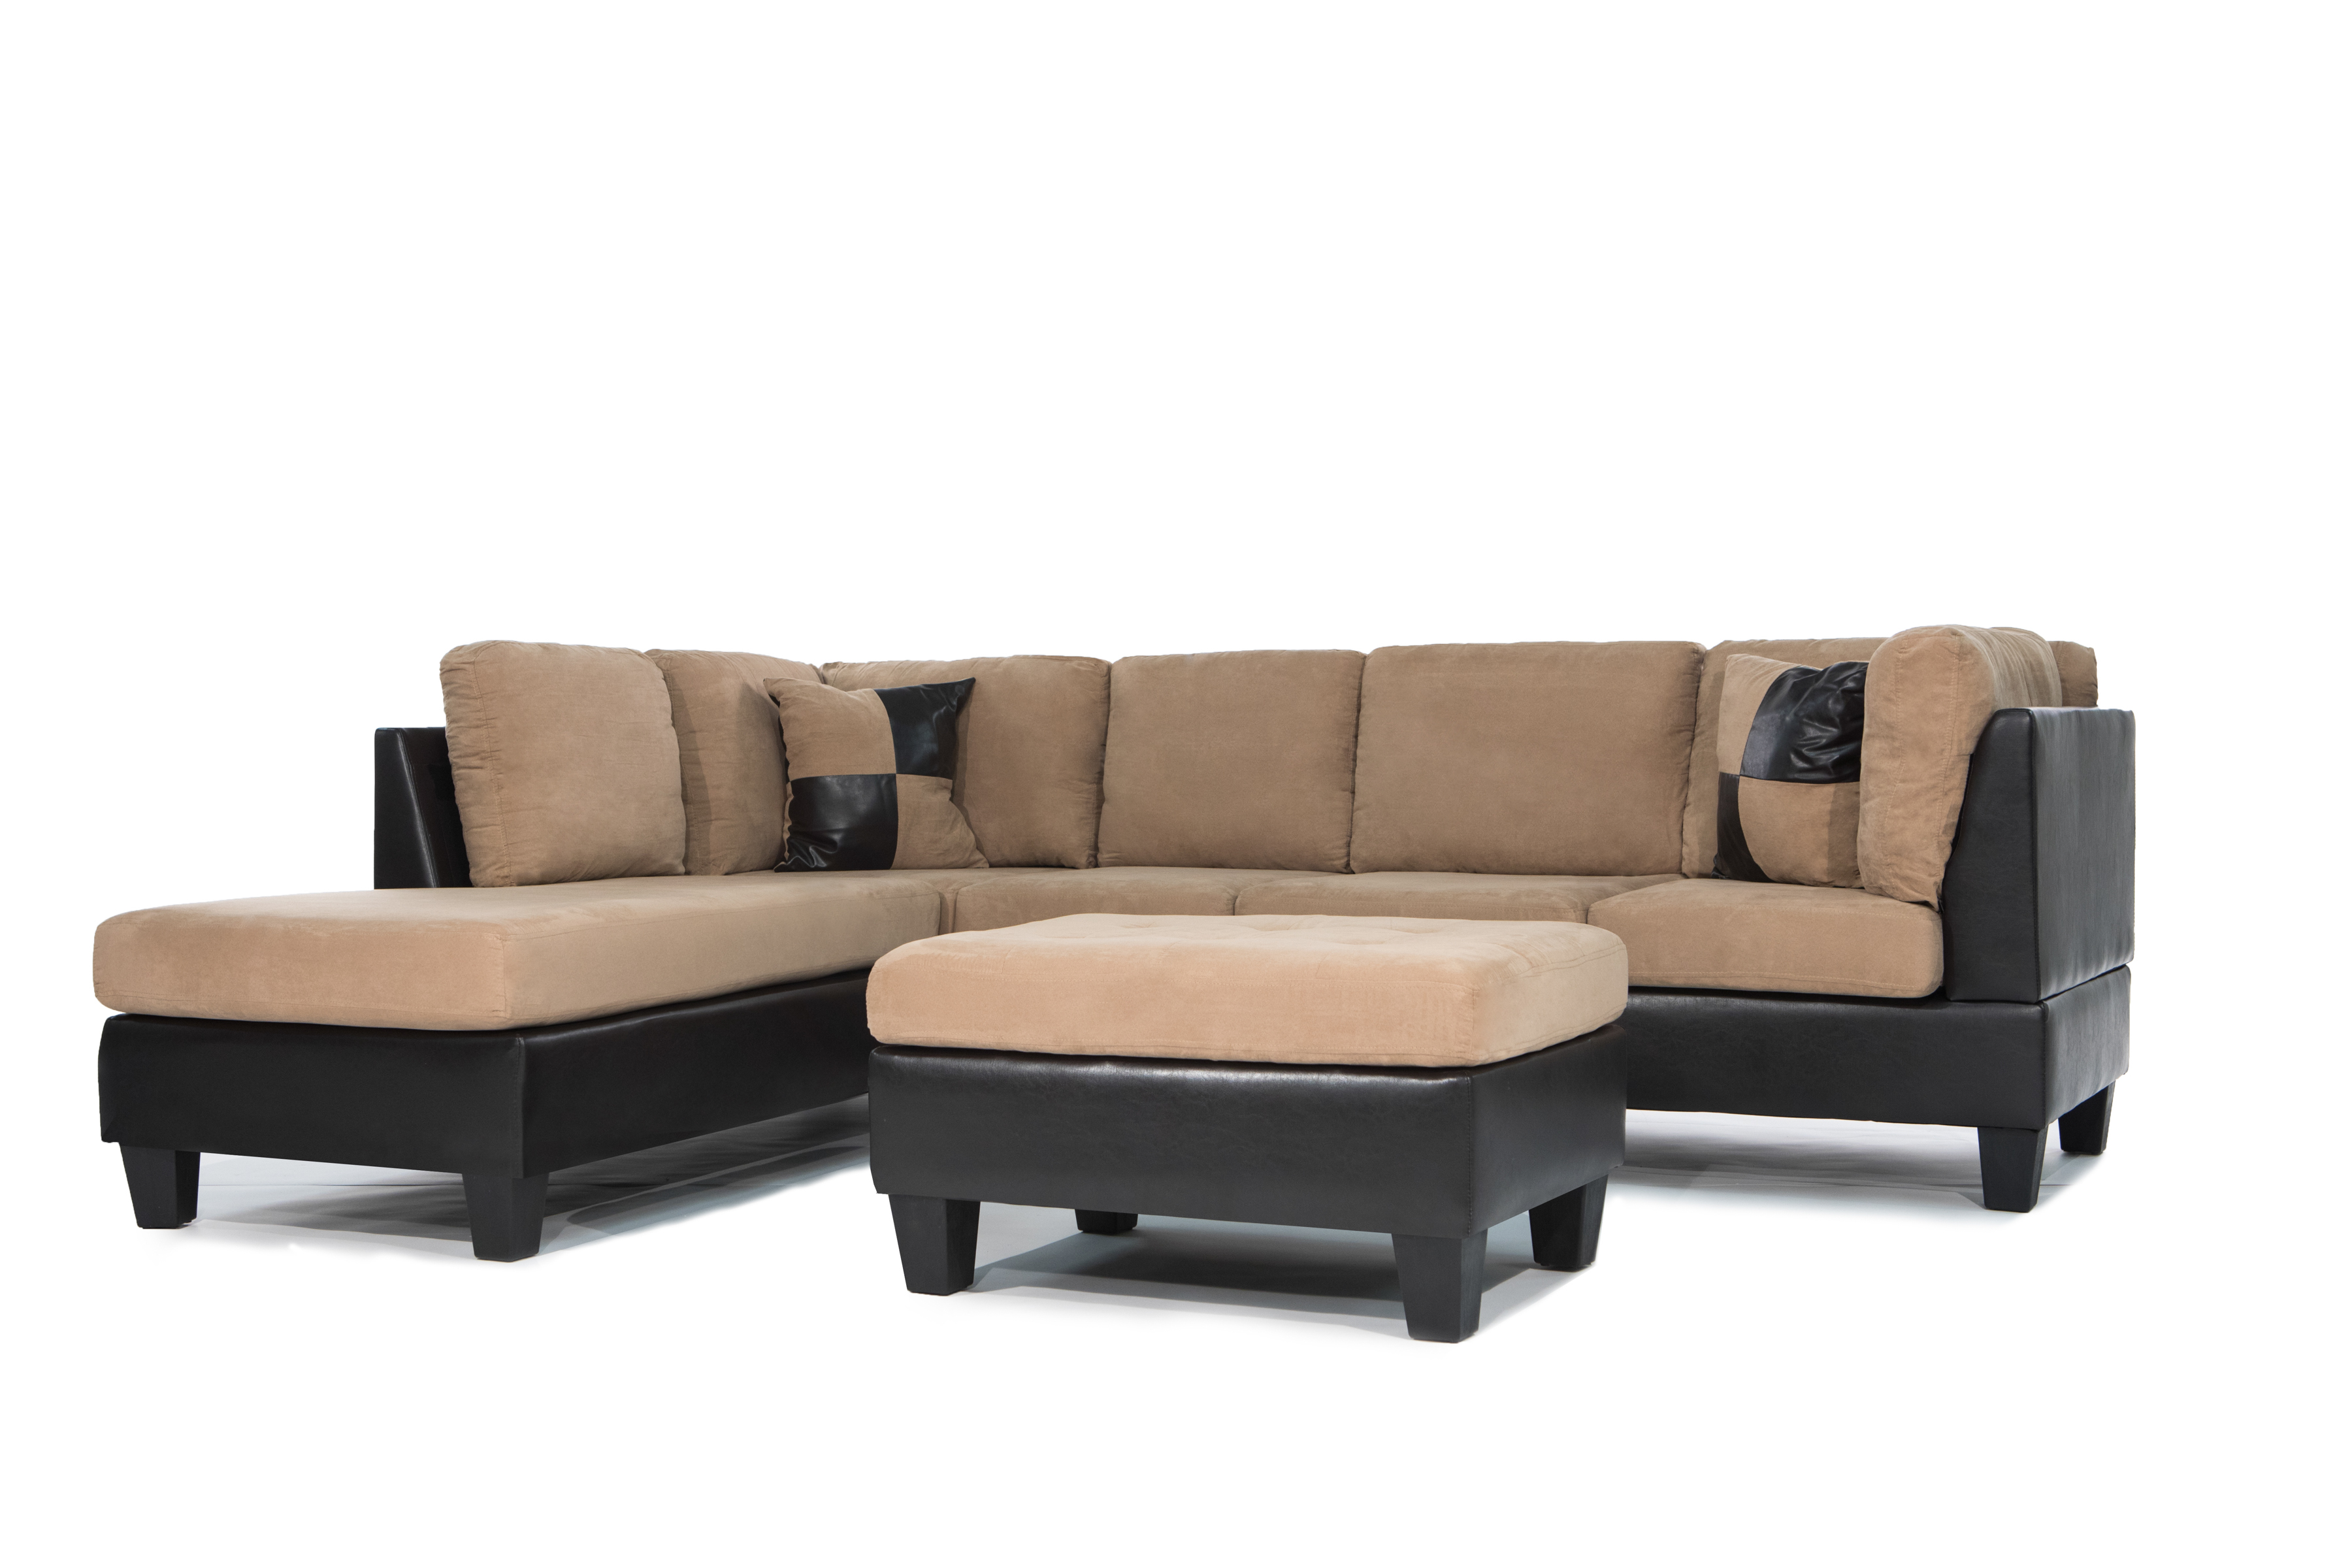 Modern leather sectional sofas Trendy Piece Modern Soft Reversible Microfiber And Faux Leather Sectional Sofa With Ottoman Walmartcom Walmart Piece Modern Soft Reversible Microfiber And Faux Leather Sectional